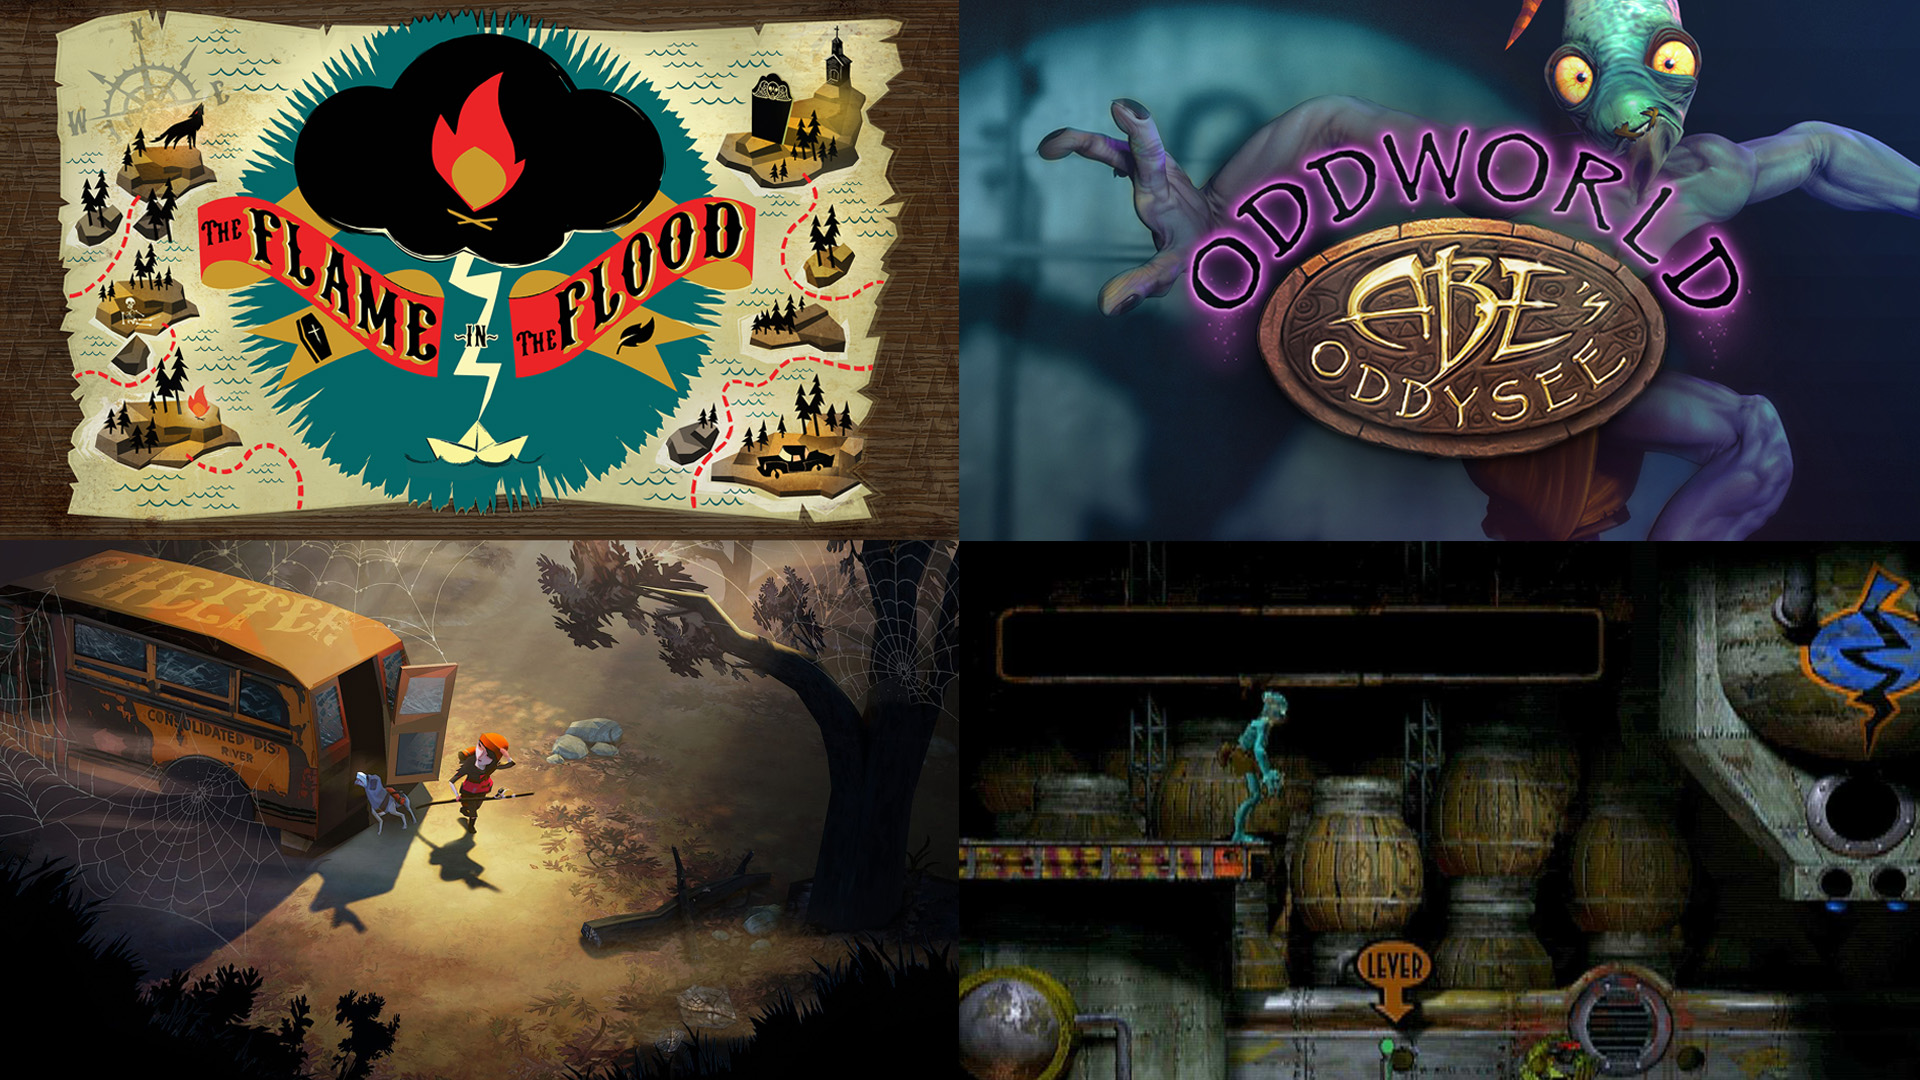 the_flame_in_the_flood_oddworld_abe_s_oddysee.jpg